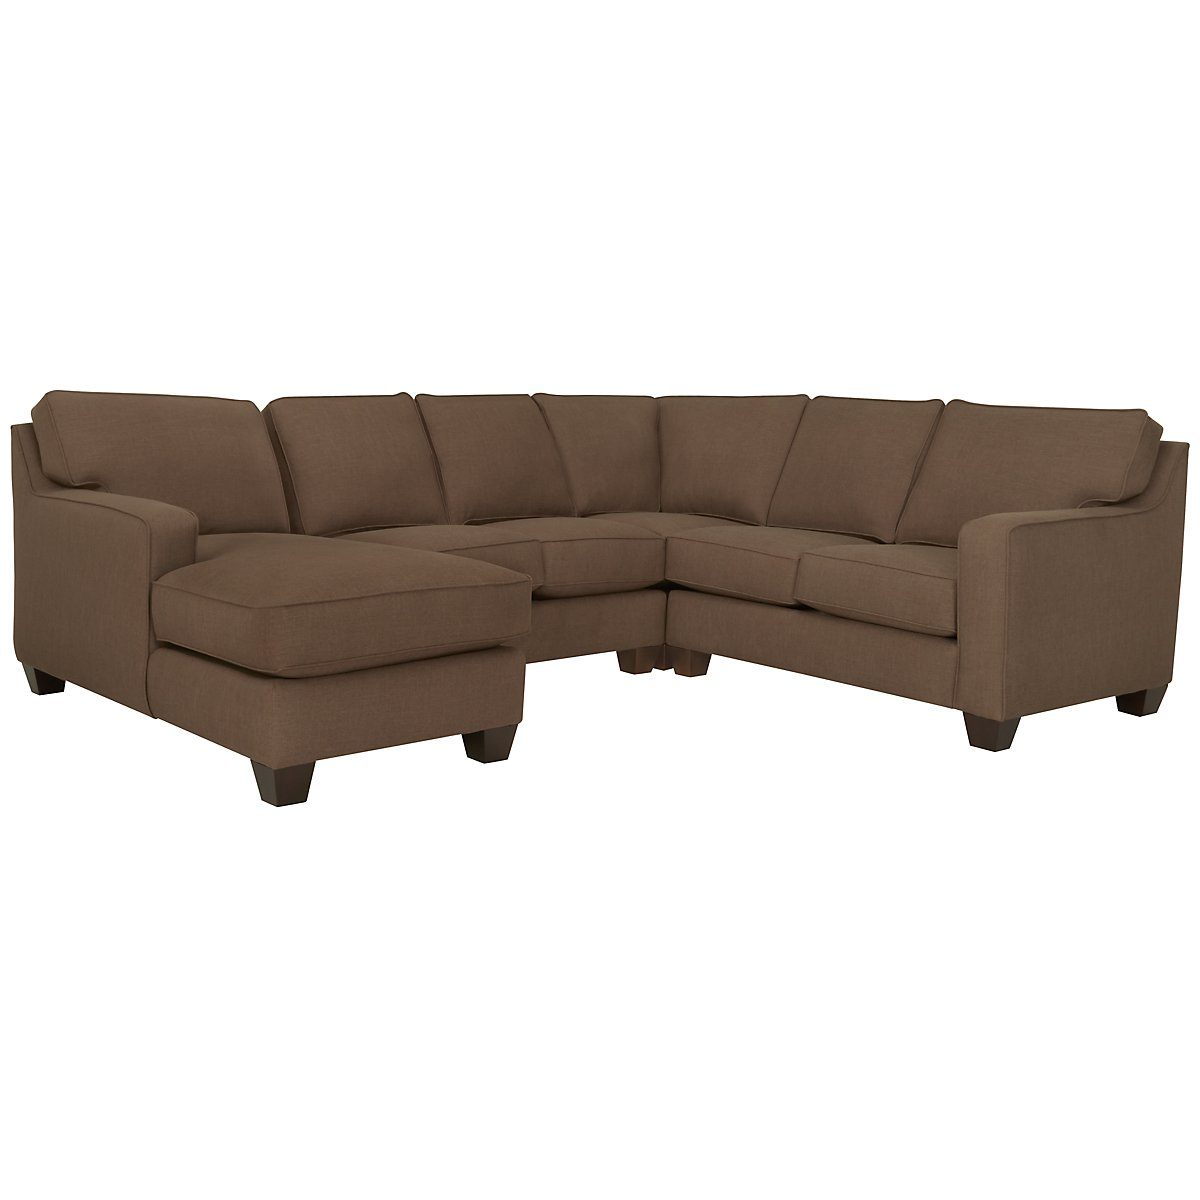 York Dark Brown Fabric Medium Left Chaise Sectional